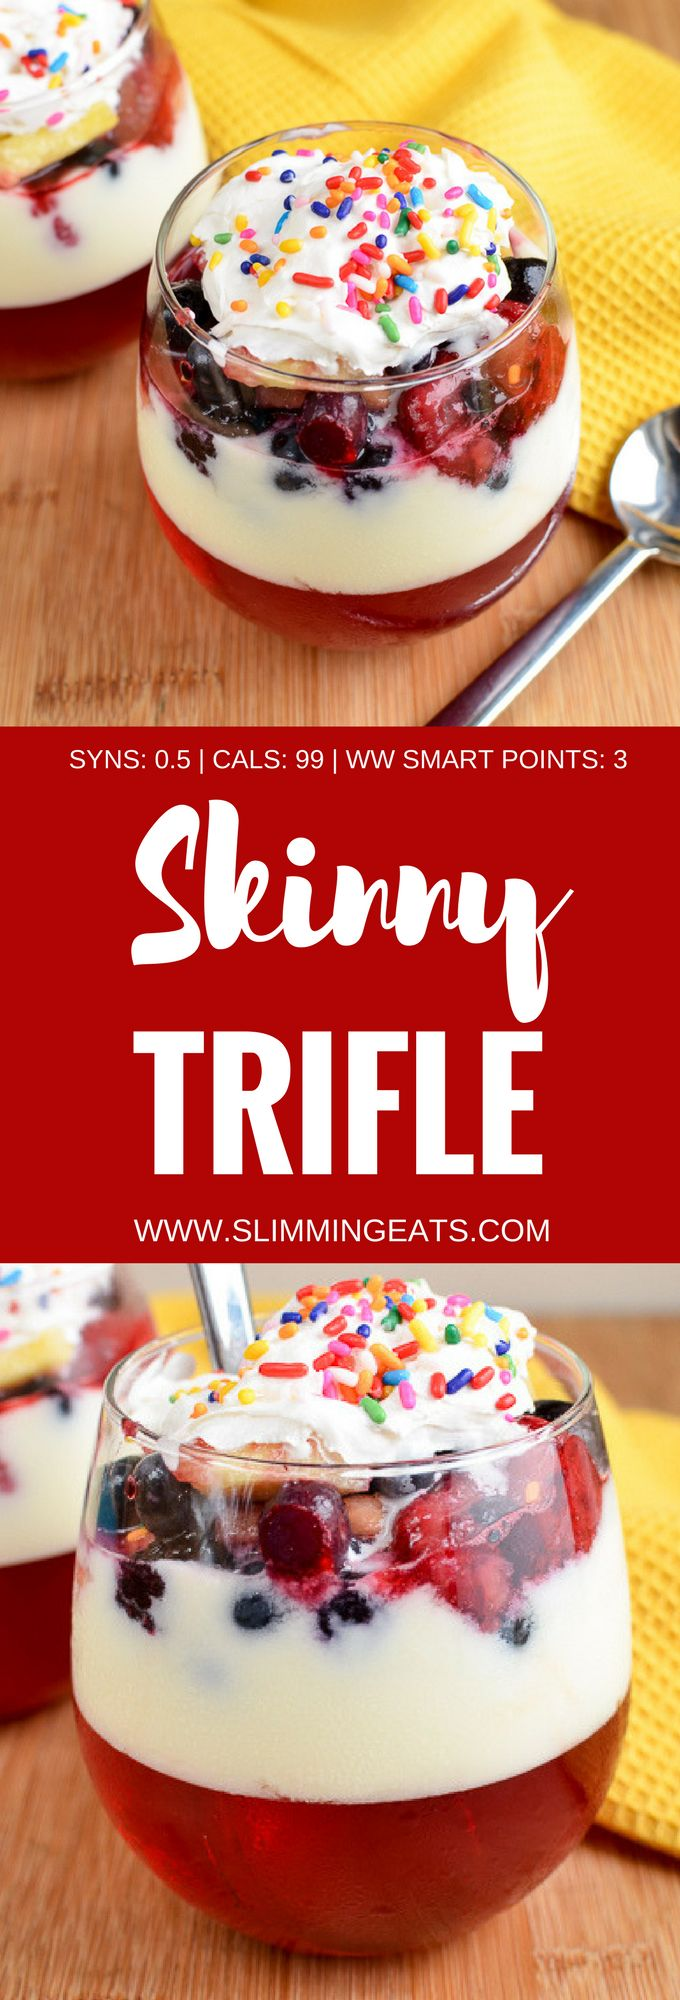 Slimming Eats Low Syn Skinny Trifle - gluten free, Slimming World and Weight Watchers friendly